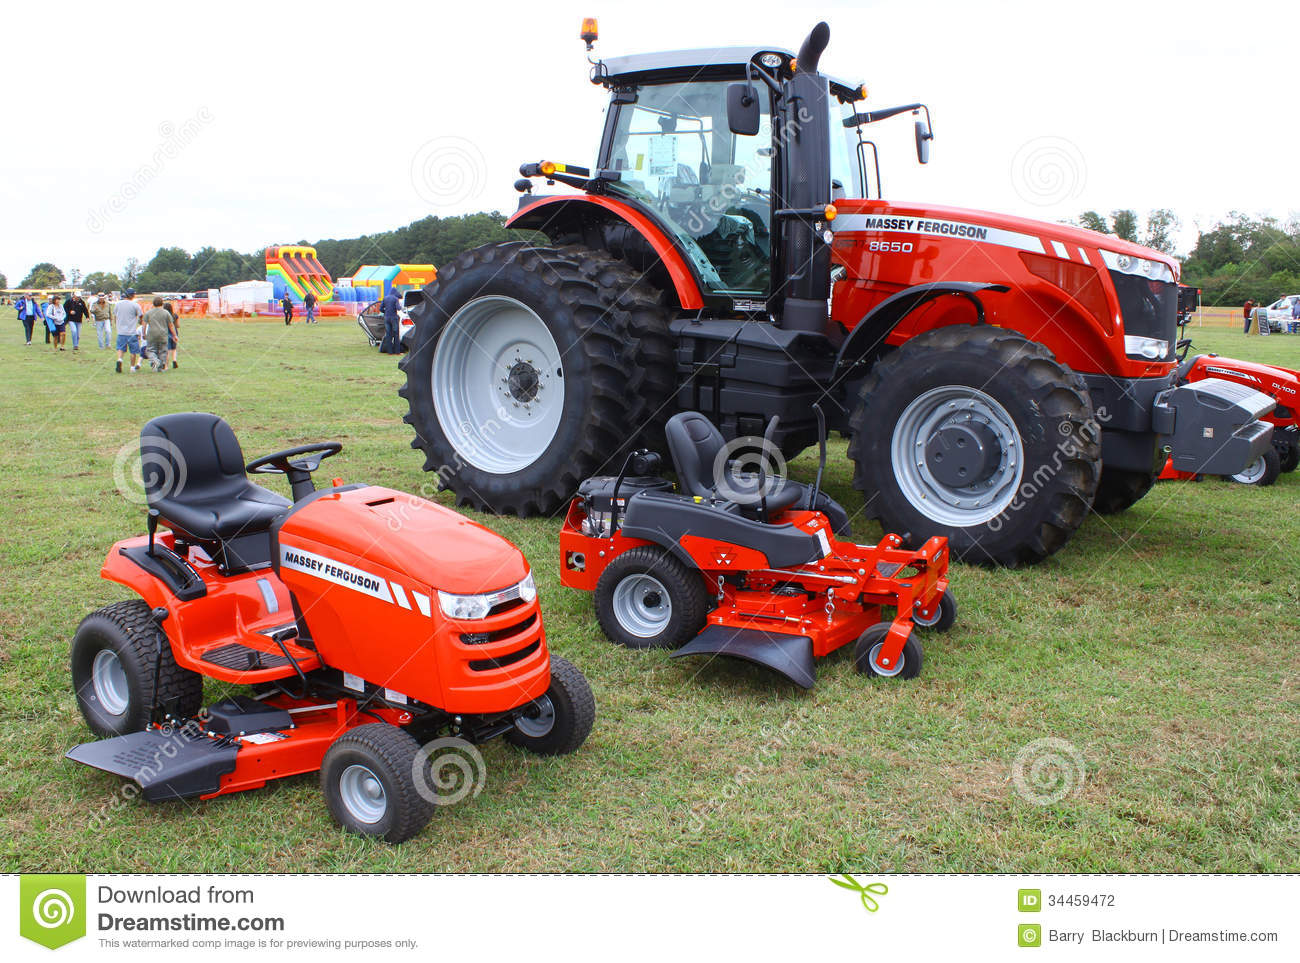 Massey Ferguson Yard Tractors : Farm and lawn tractors editorial photography image